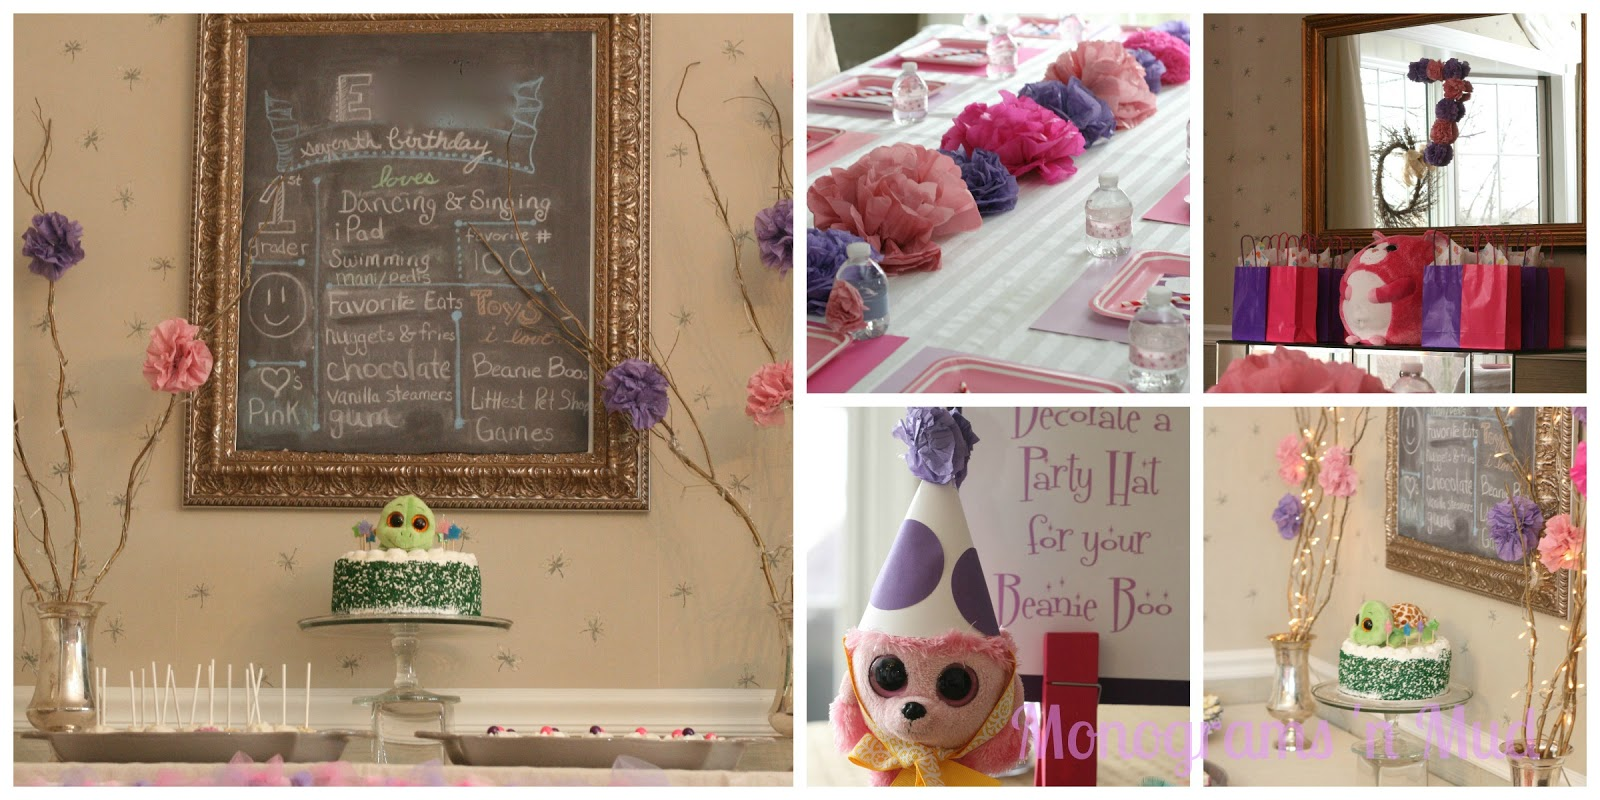 Monograms N Mud Belles Pink Amp Purple Beanie Boo Birthday